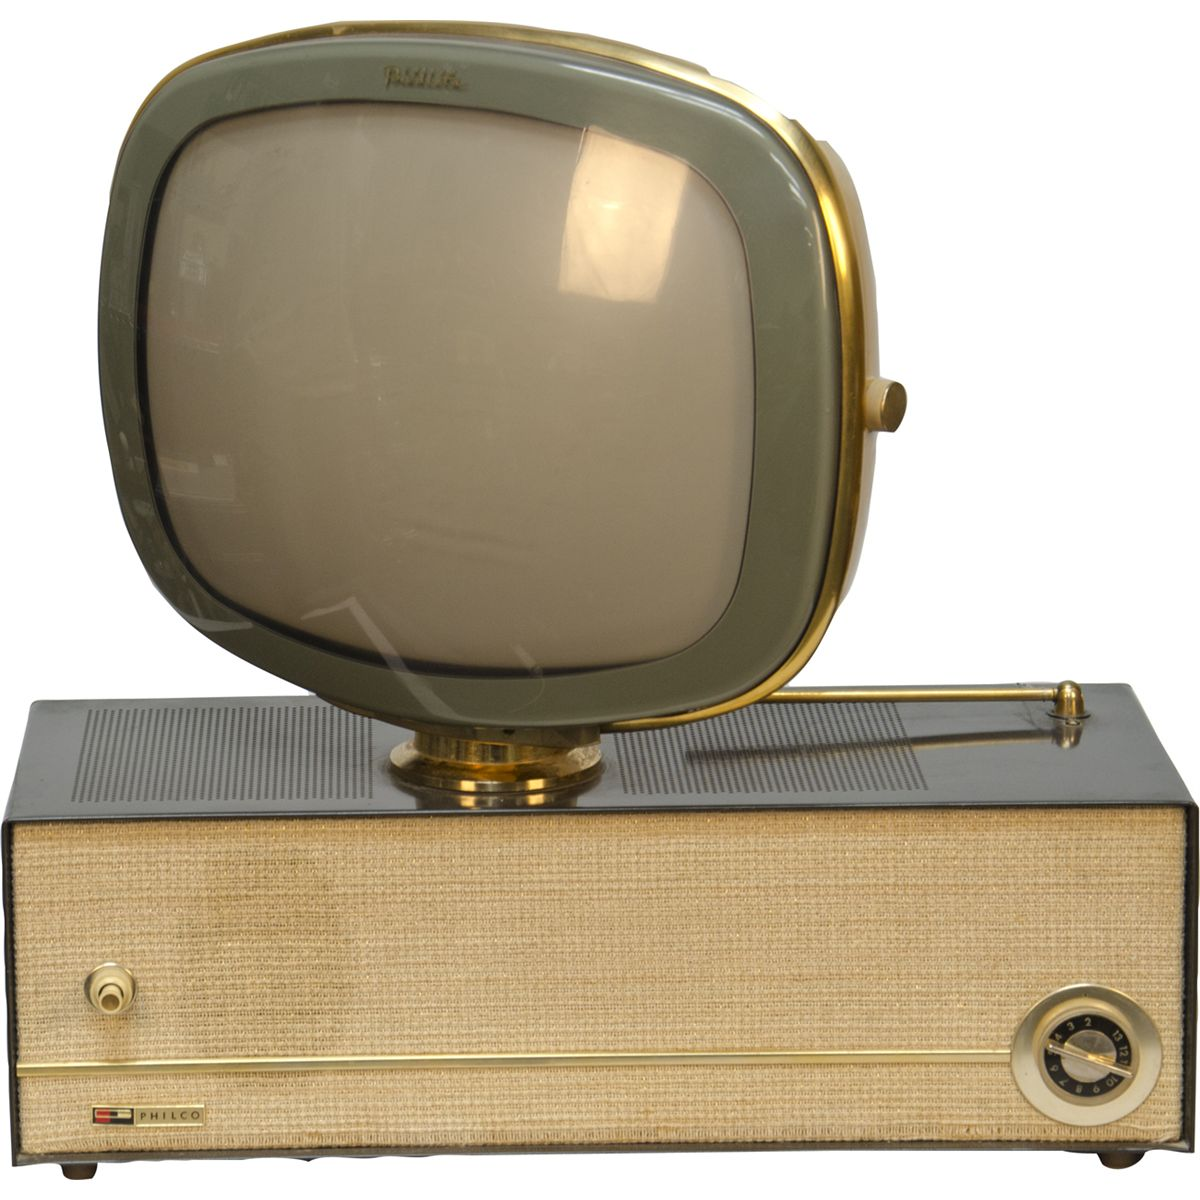 Something Round screen vintage televisions